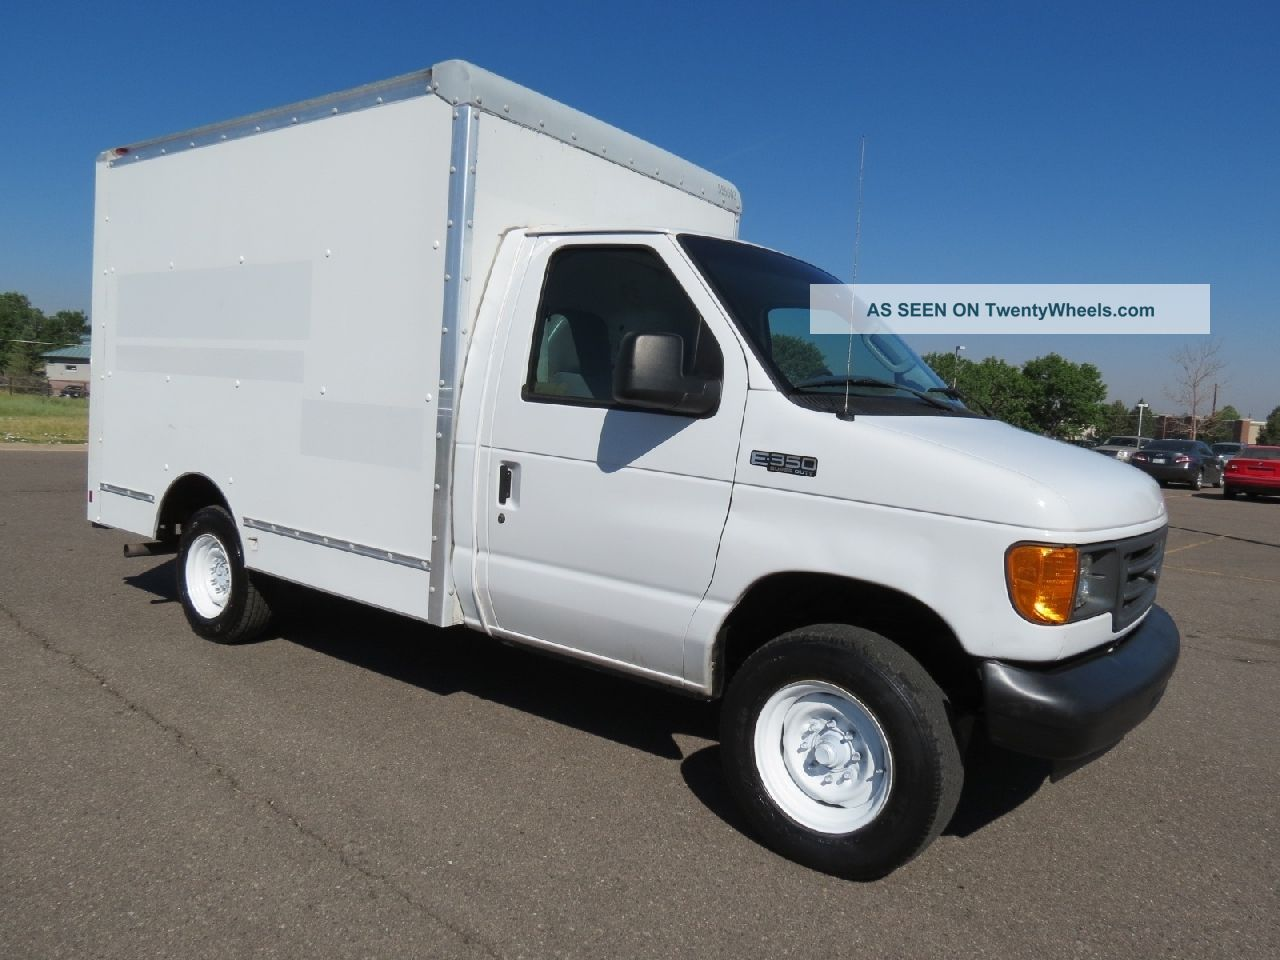 9332 2005 ford e350 service utility work van delivery box truck on semi truck dump trailers specs